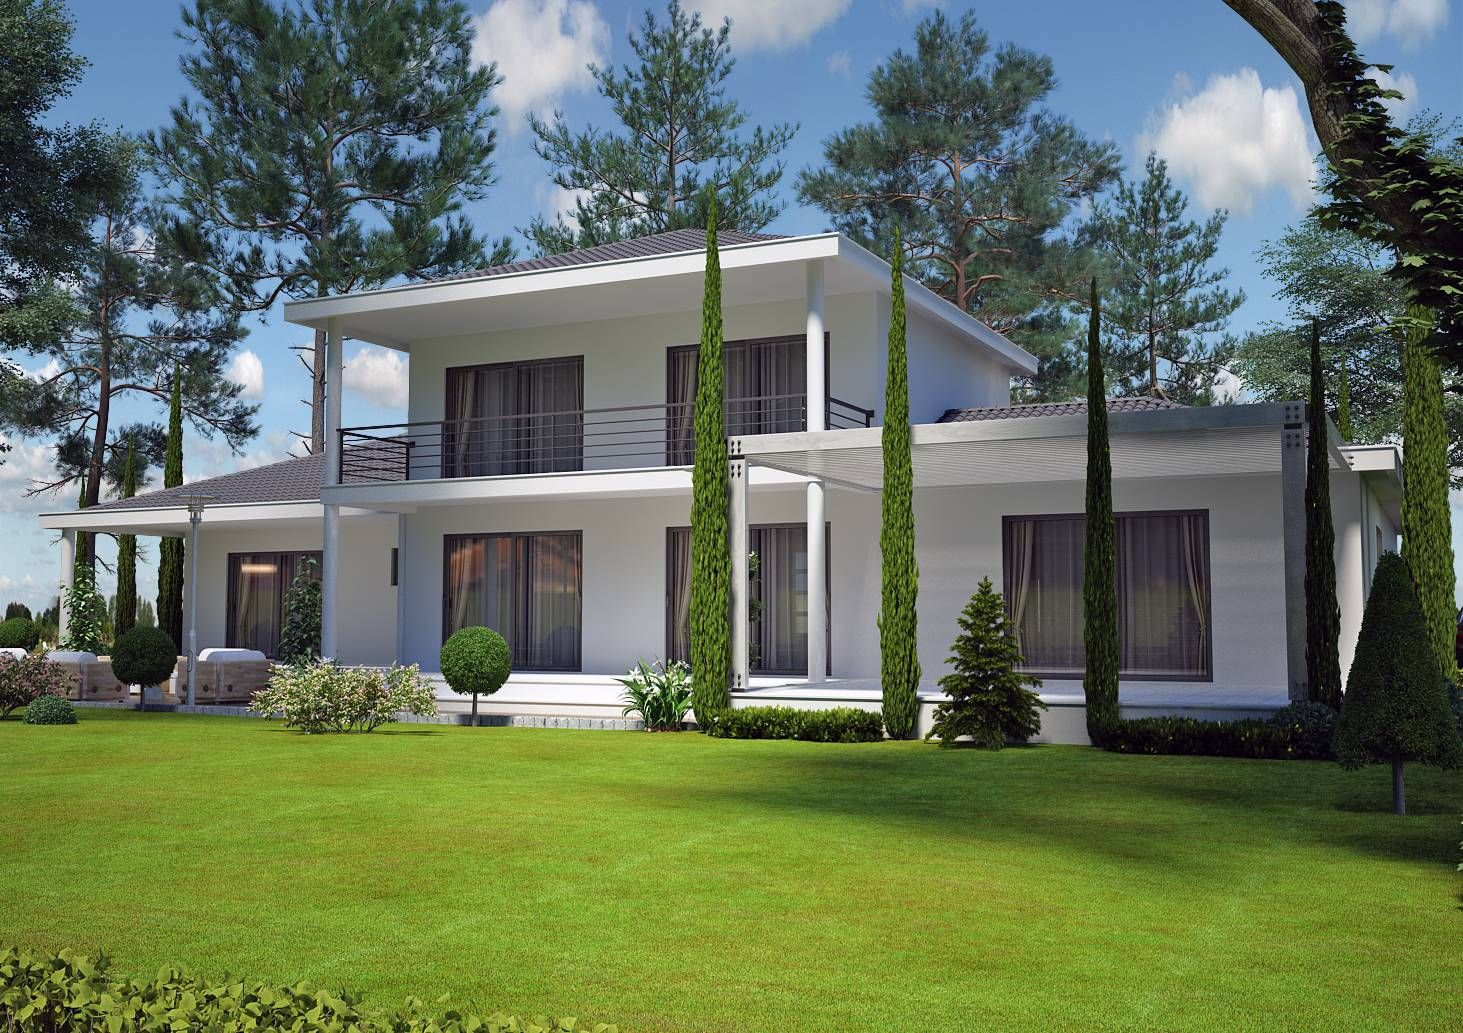 Villa contemporaine 150 m2 etage mod le pinede salon for Plan de maison contemporaine a etage